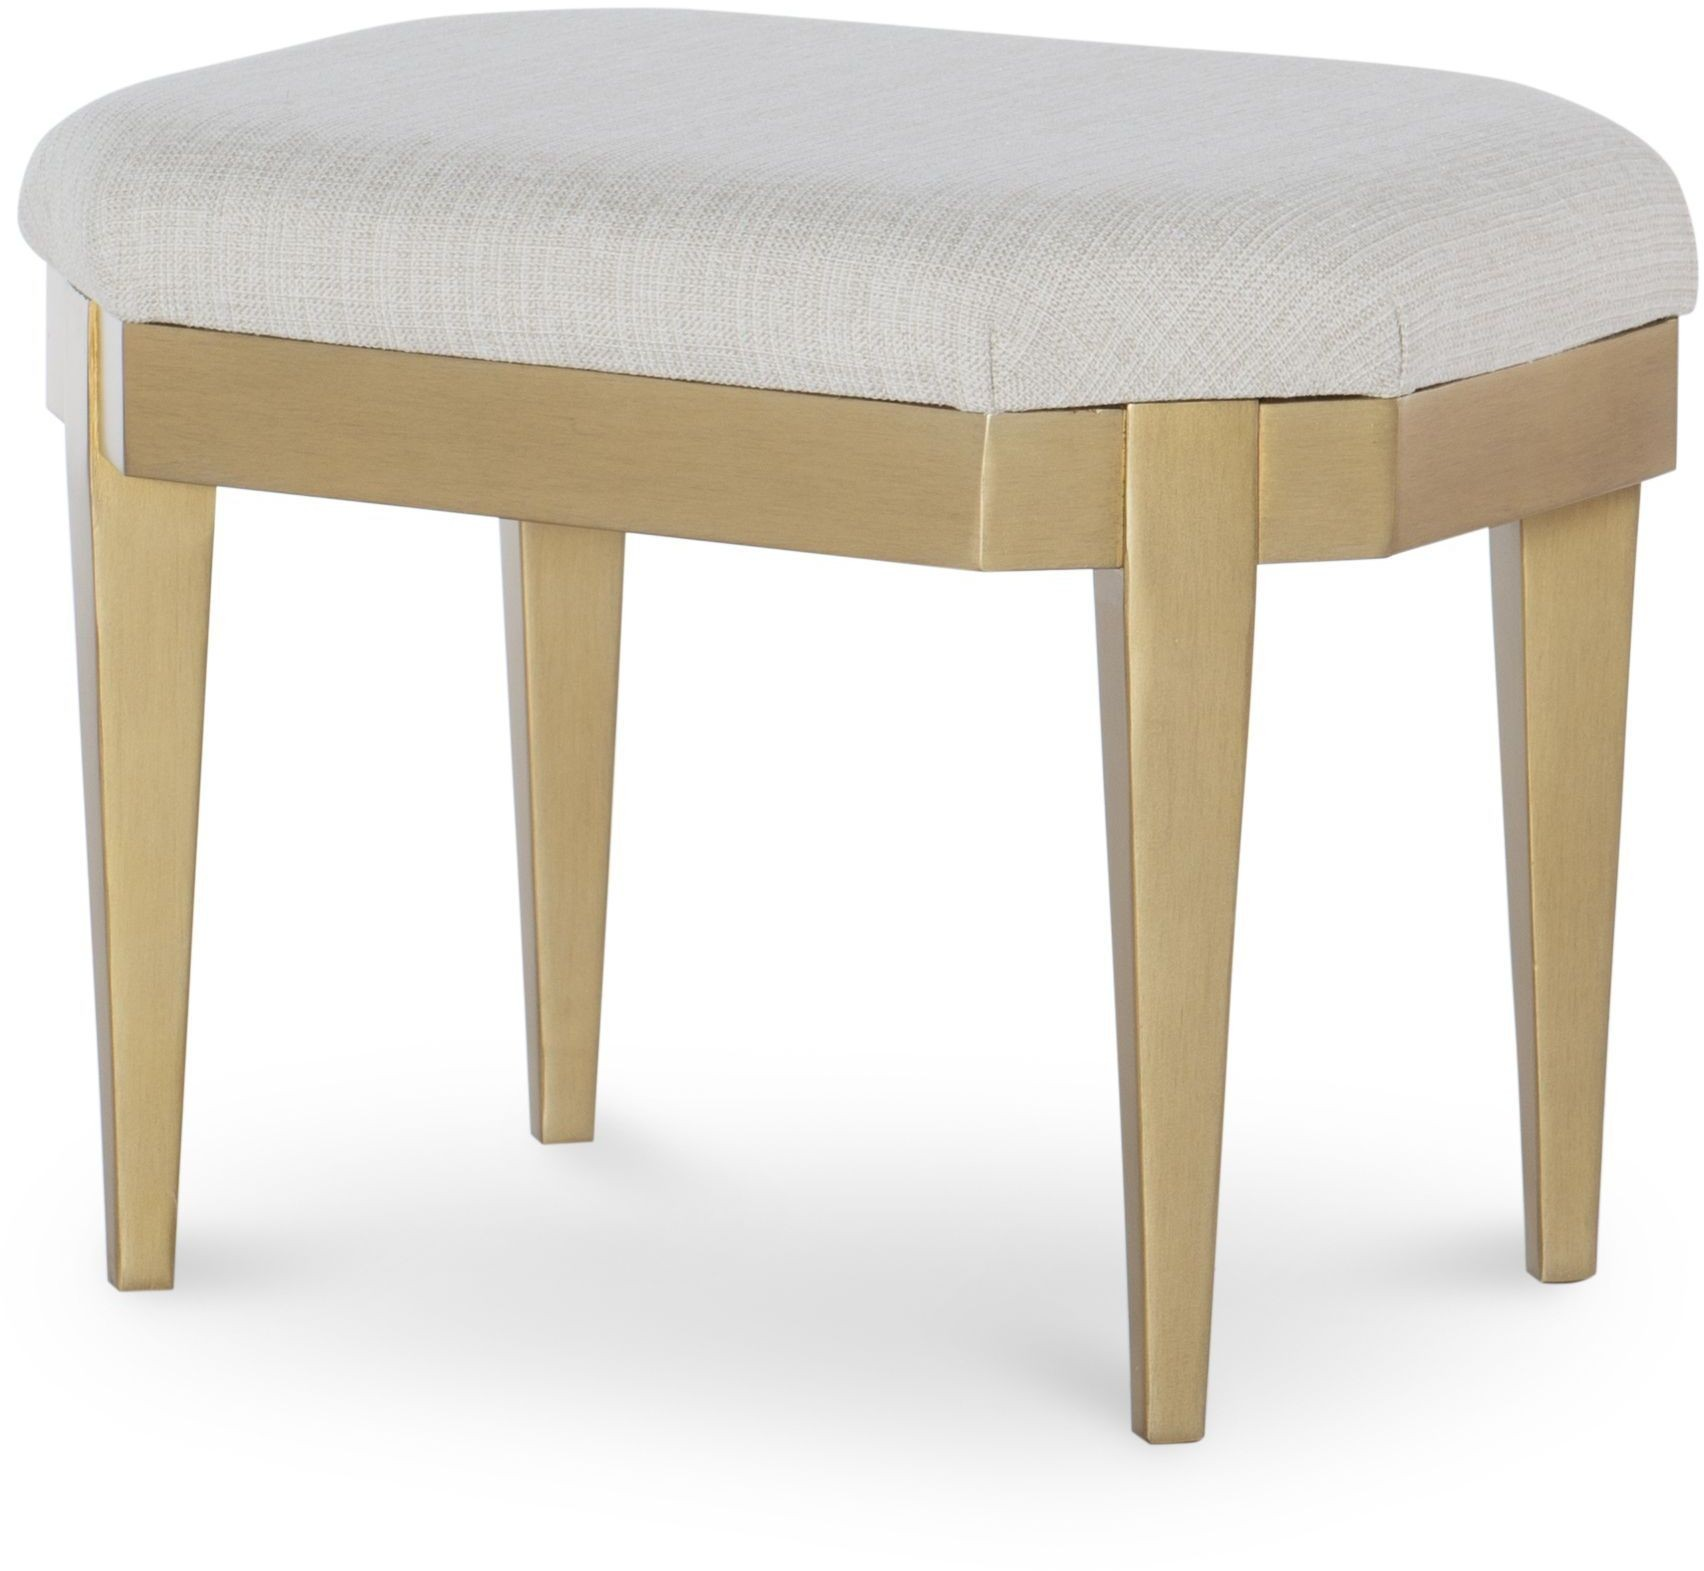 Uptown White And Gold Stool From Racheal Ray Home